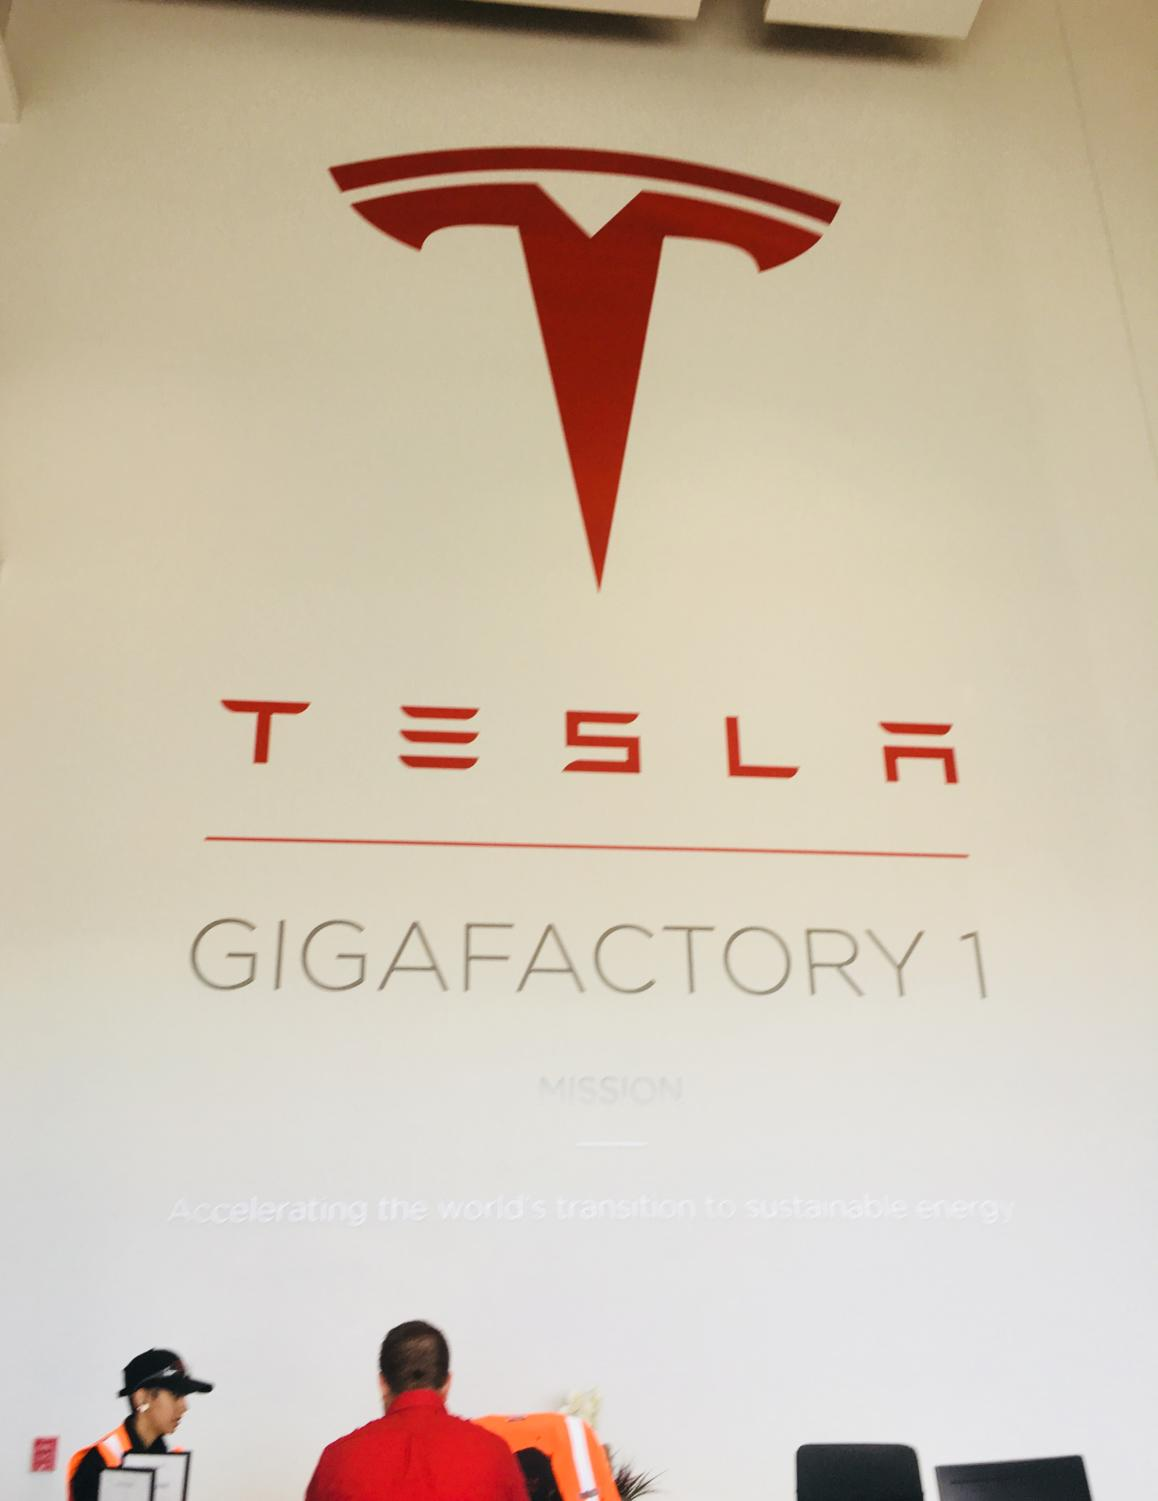 At my visit to the Tesla Gigafactory, I met a few of the many women engineers who worked there.